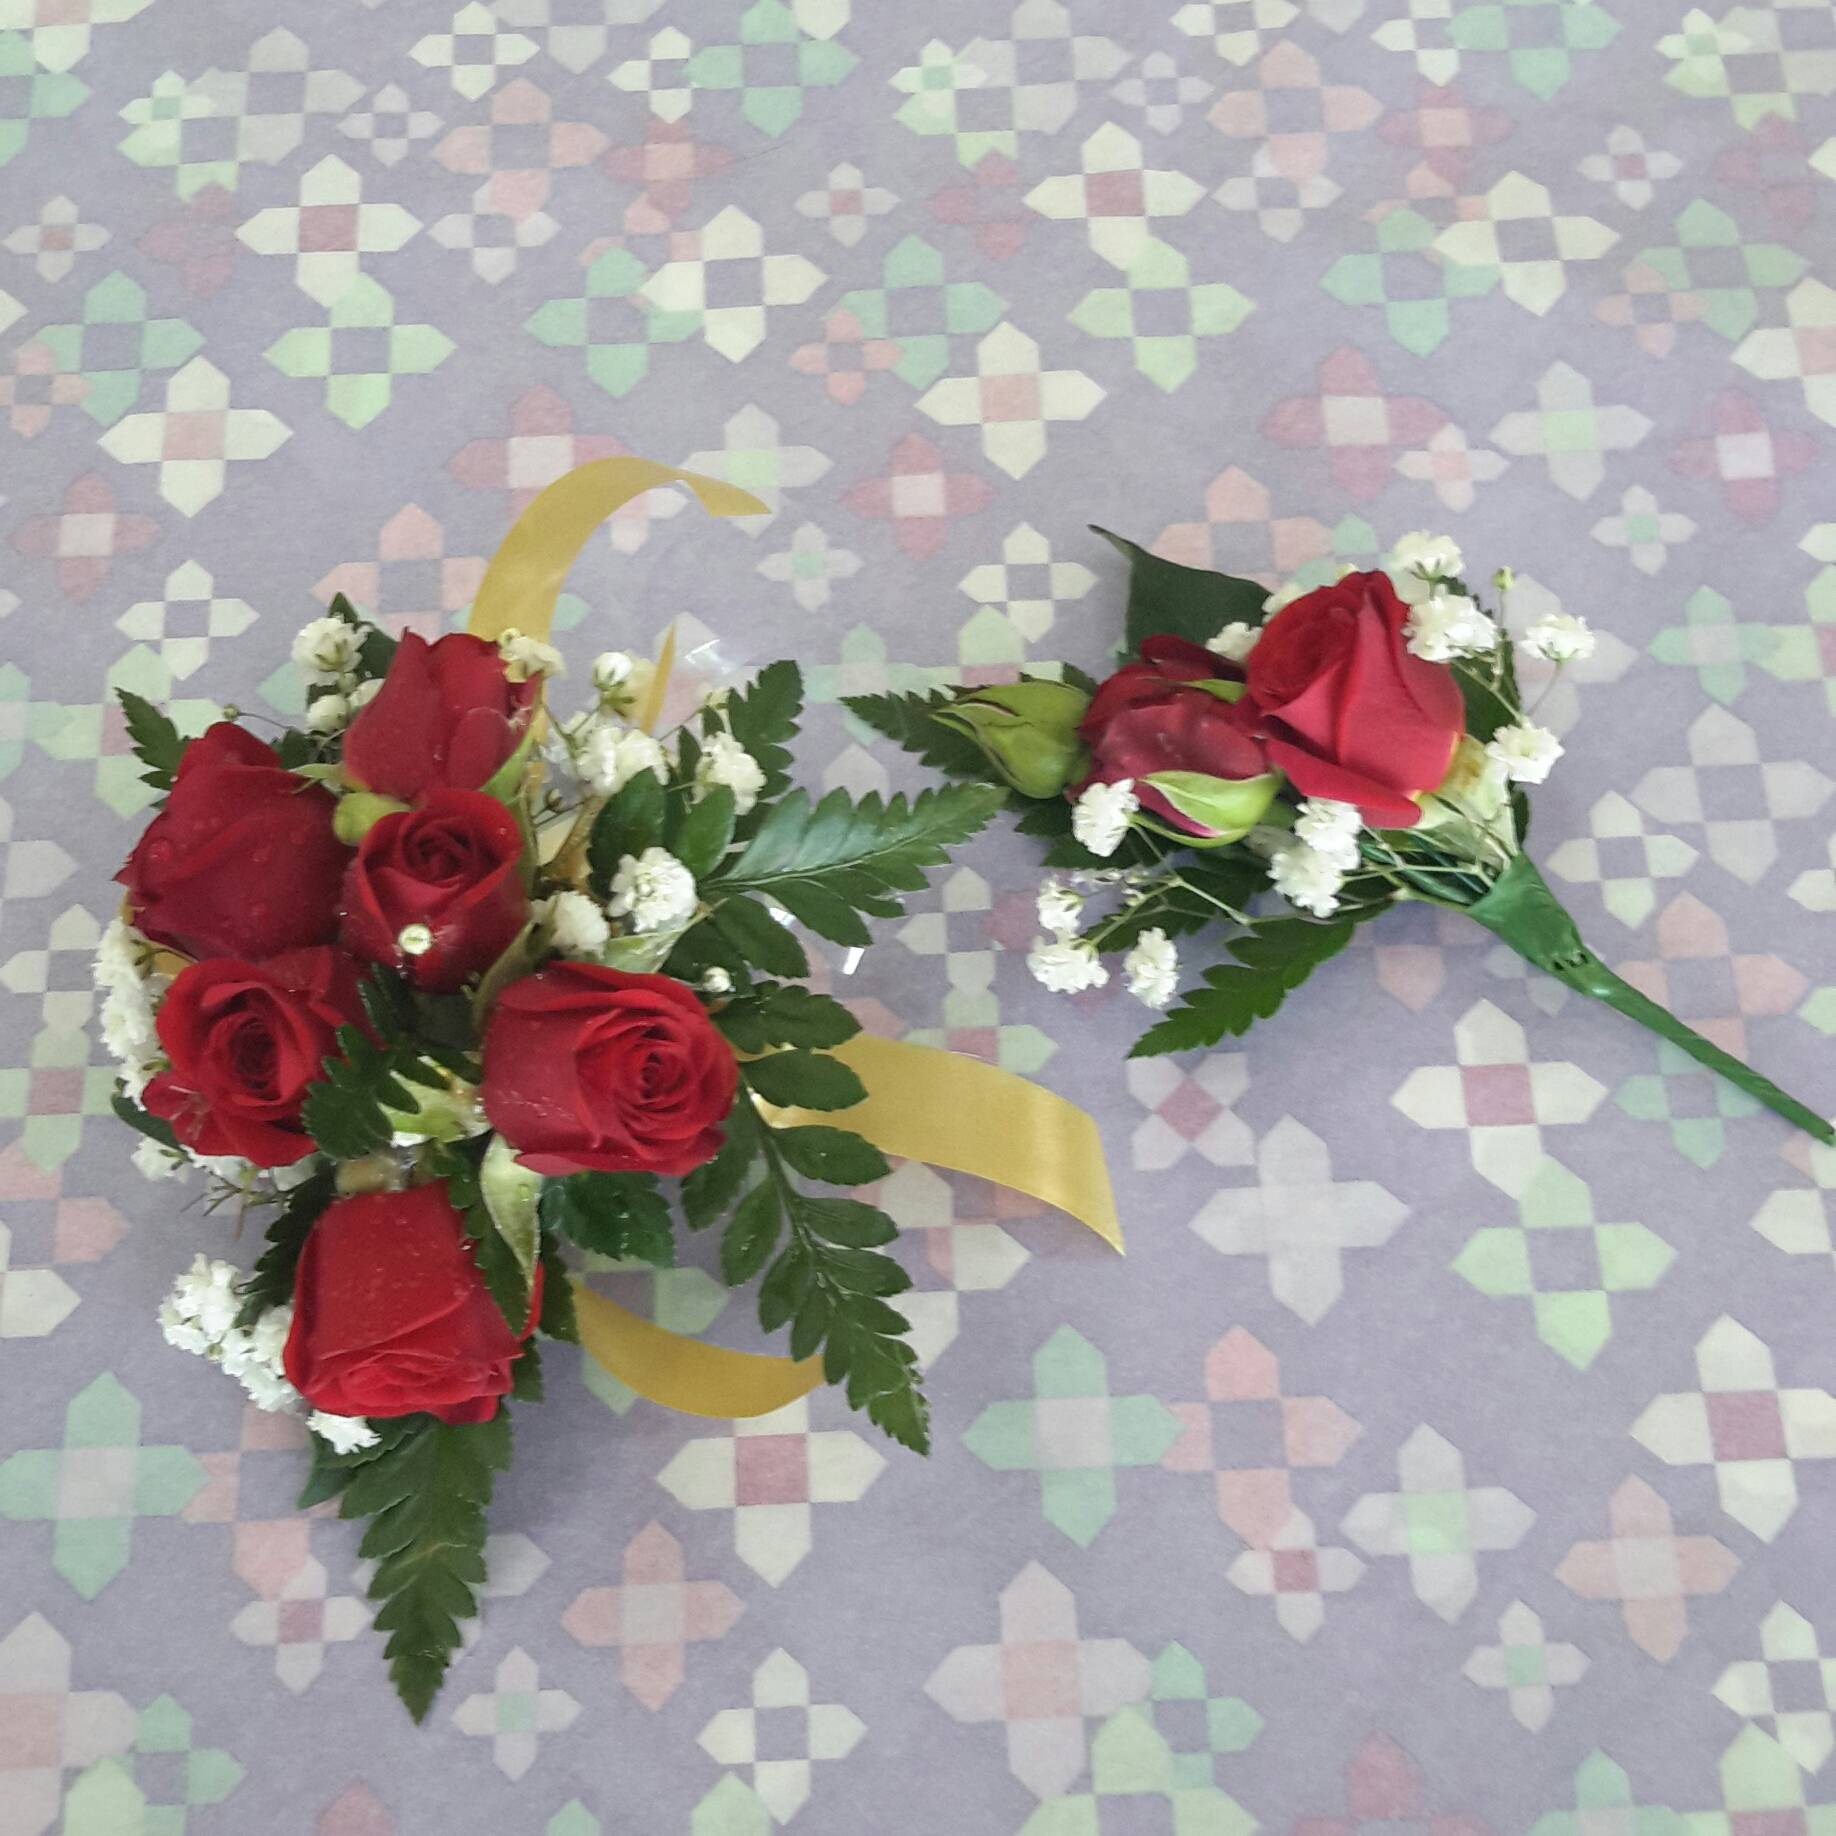 Red roses corage and matching button hole